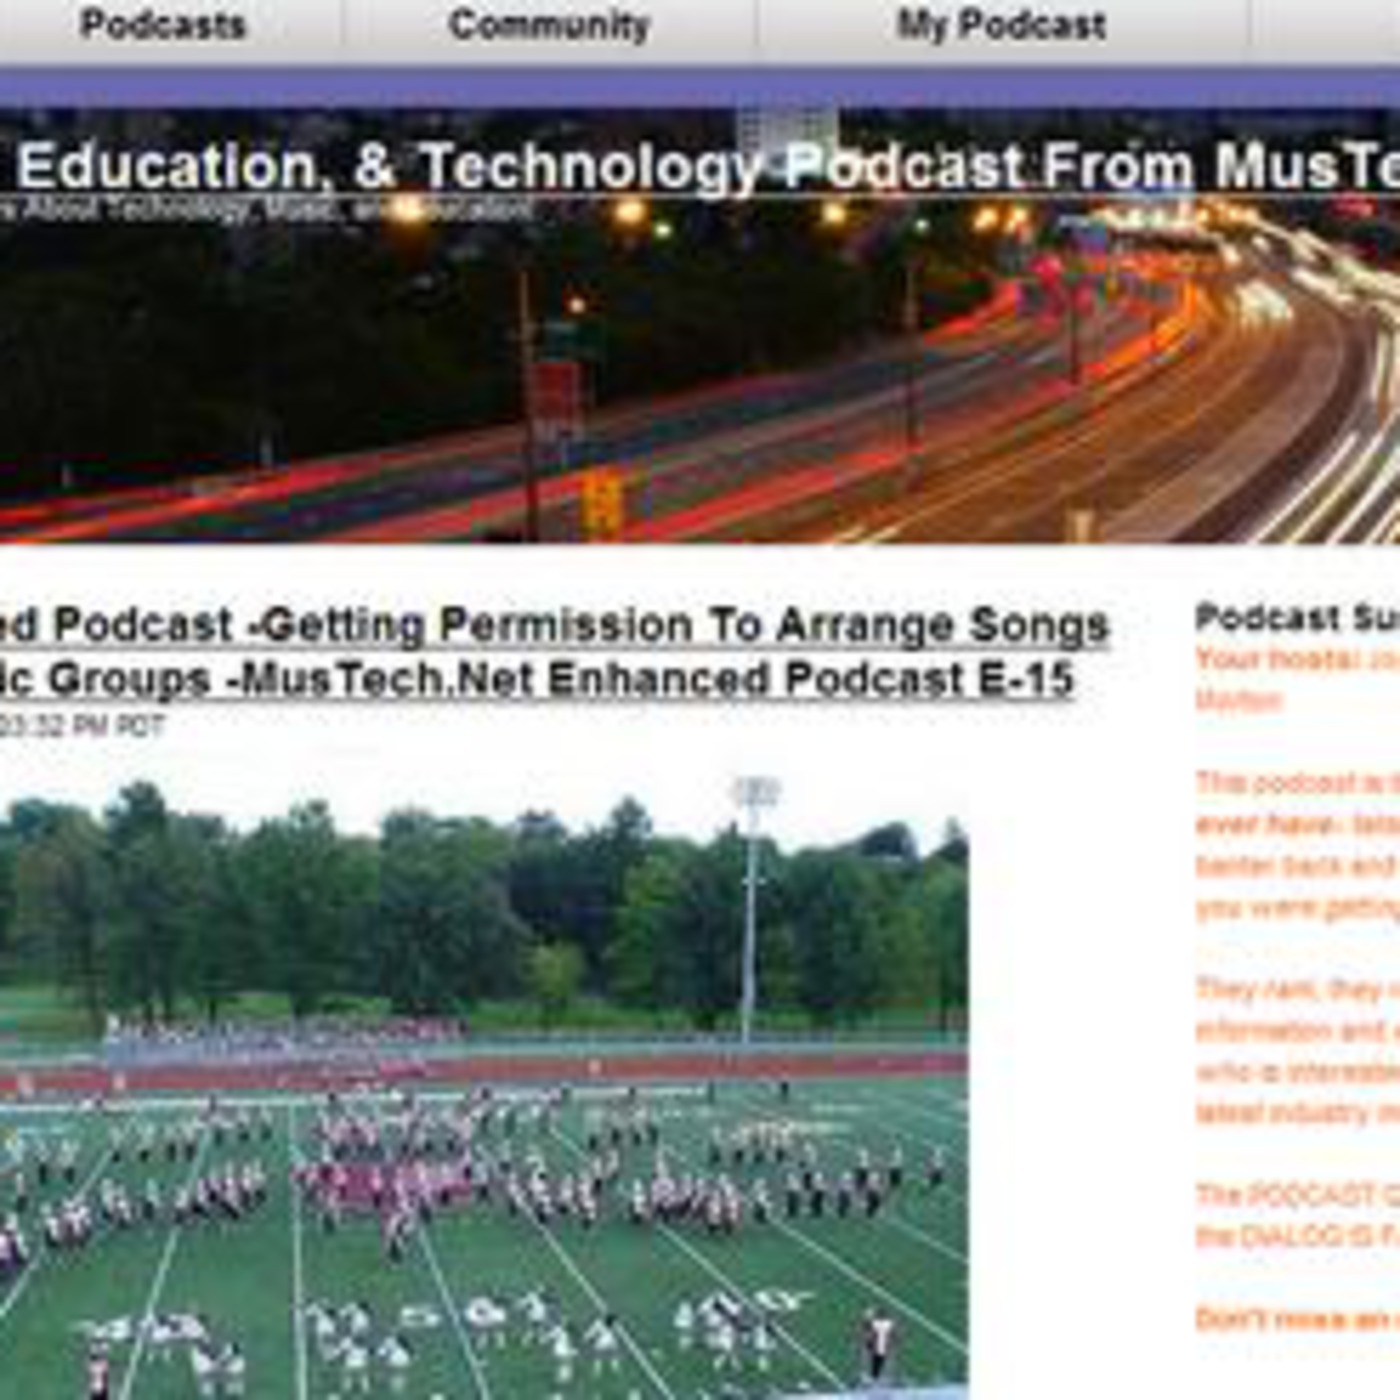 A Whole New Season Of Music, Education, And Technology Podcasts -MusTech.Net E-16